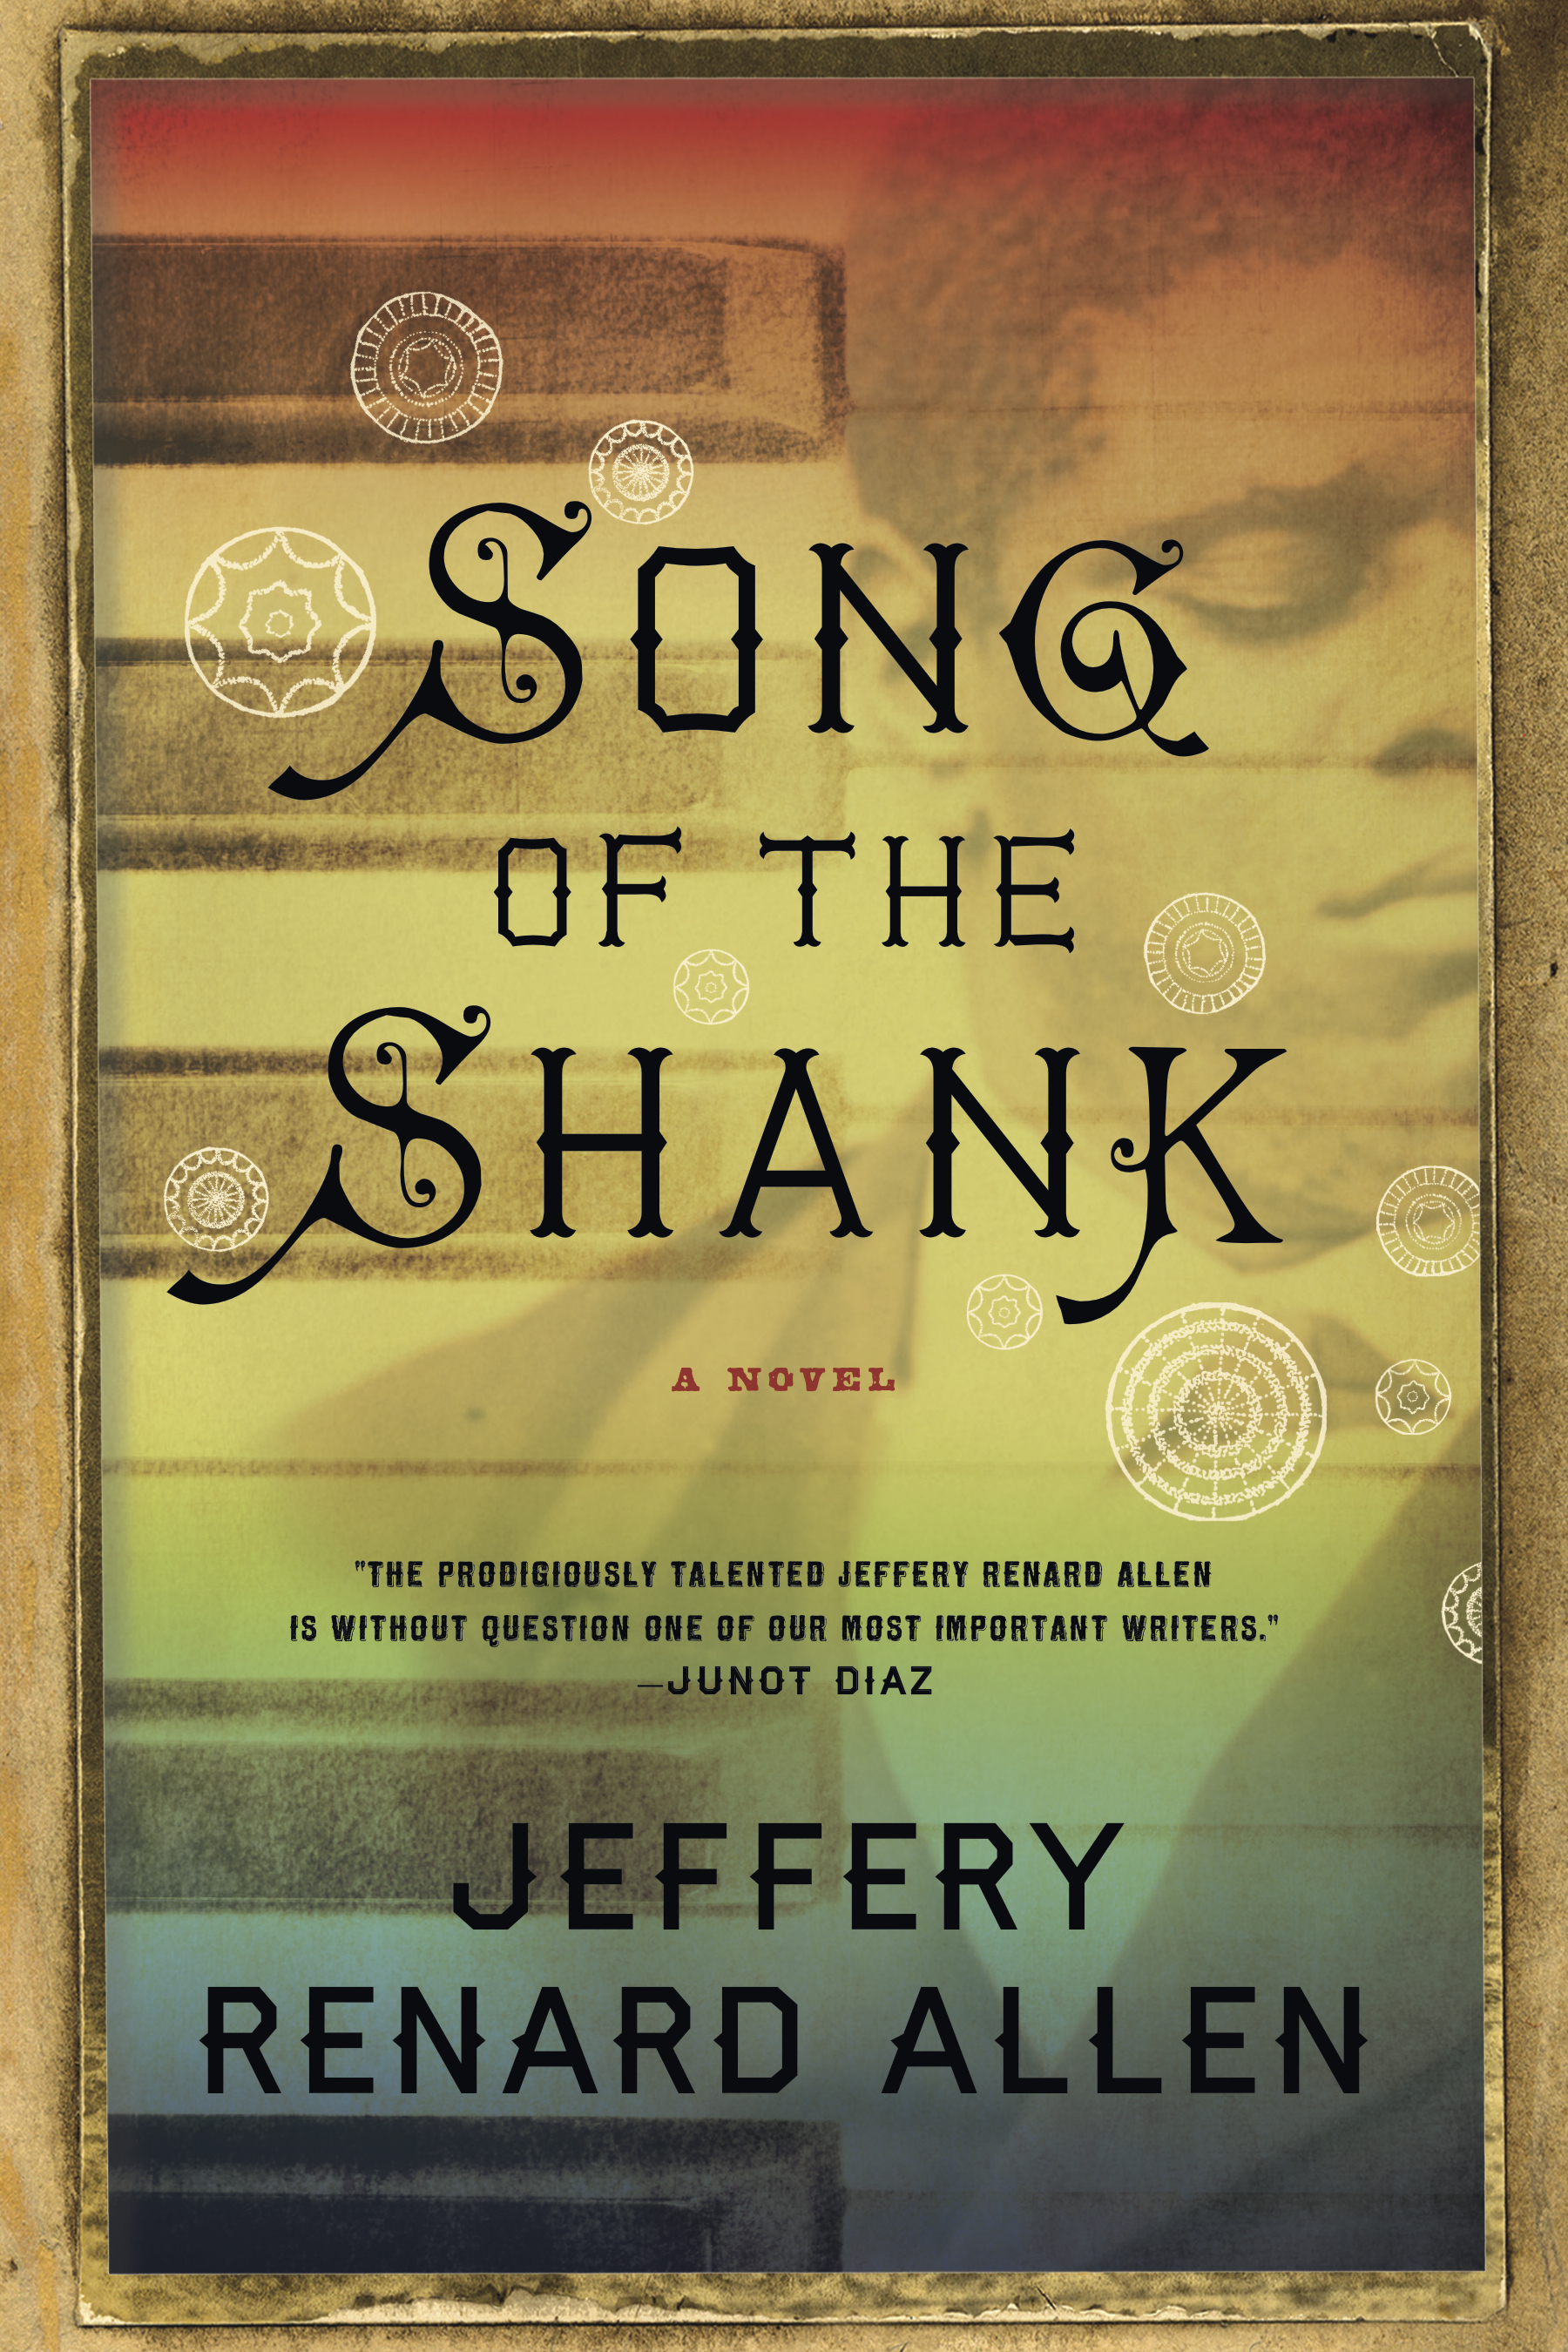 SONG OF THE SHANK.jacket art.jpg